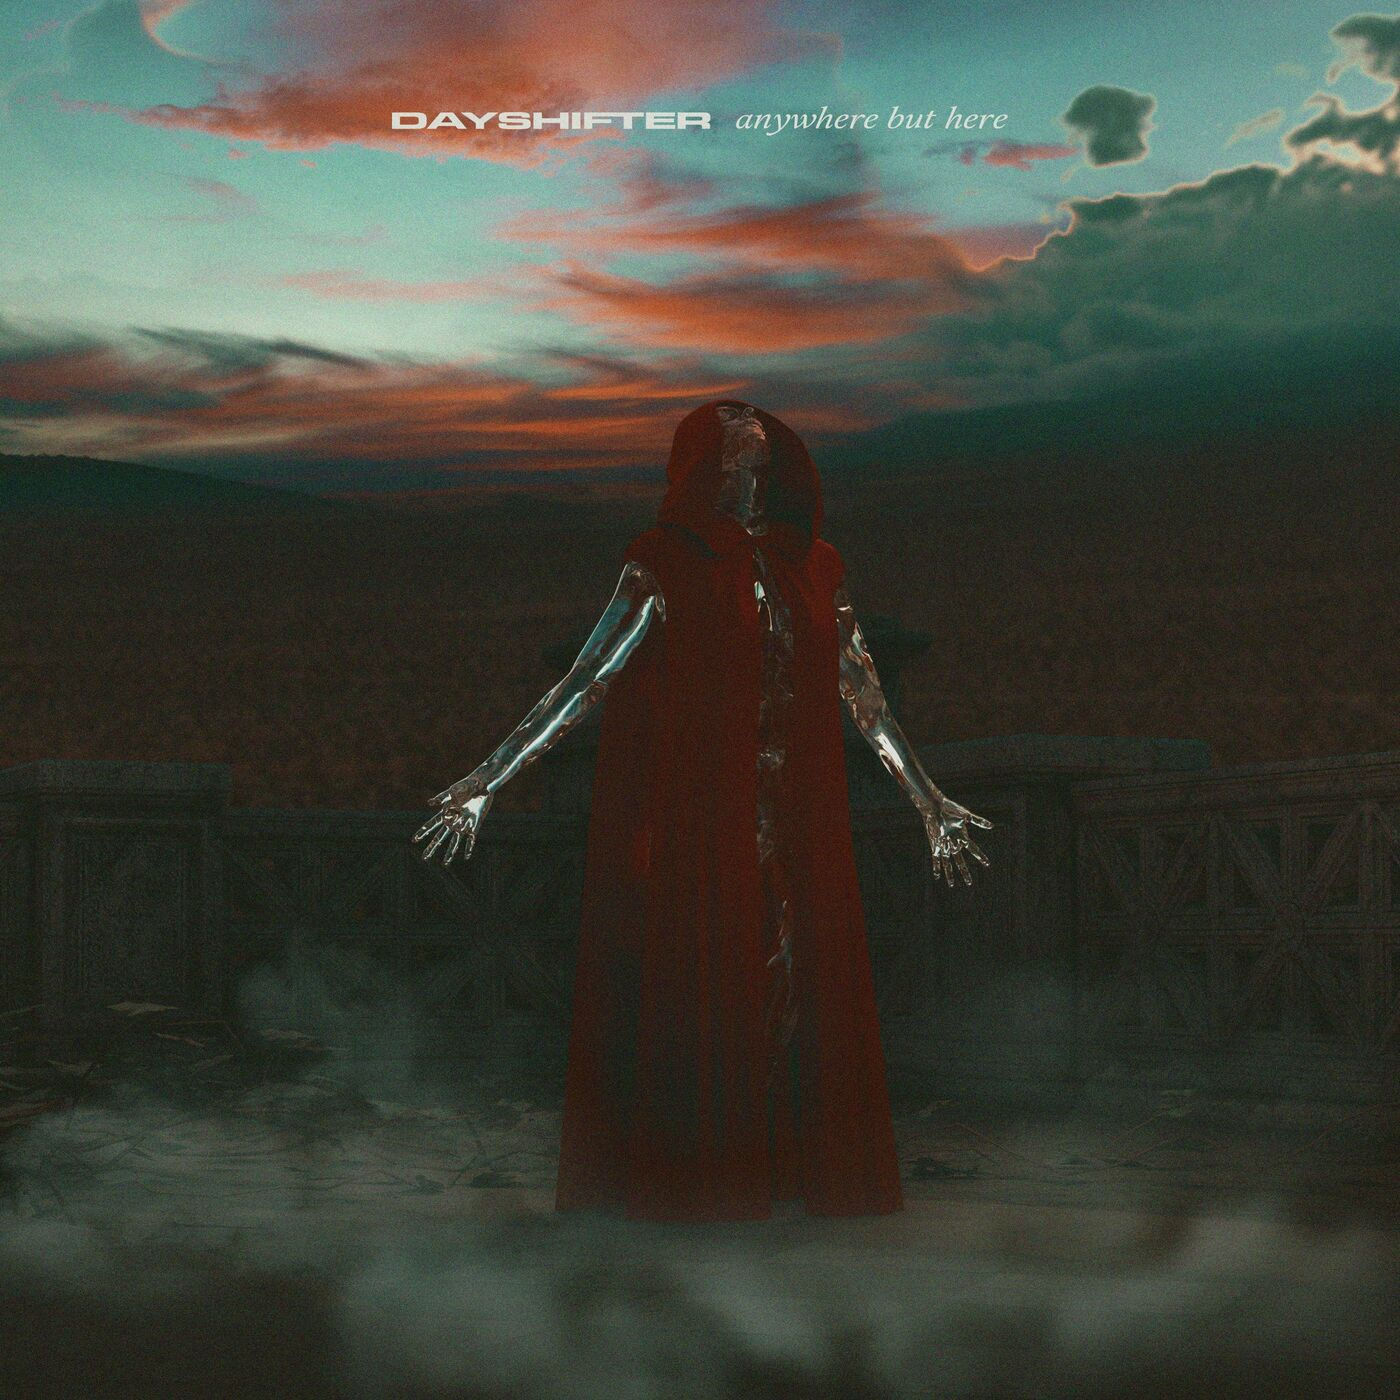 Dayshifter - Anywhere But Here [single] (2021)